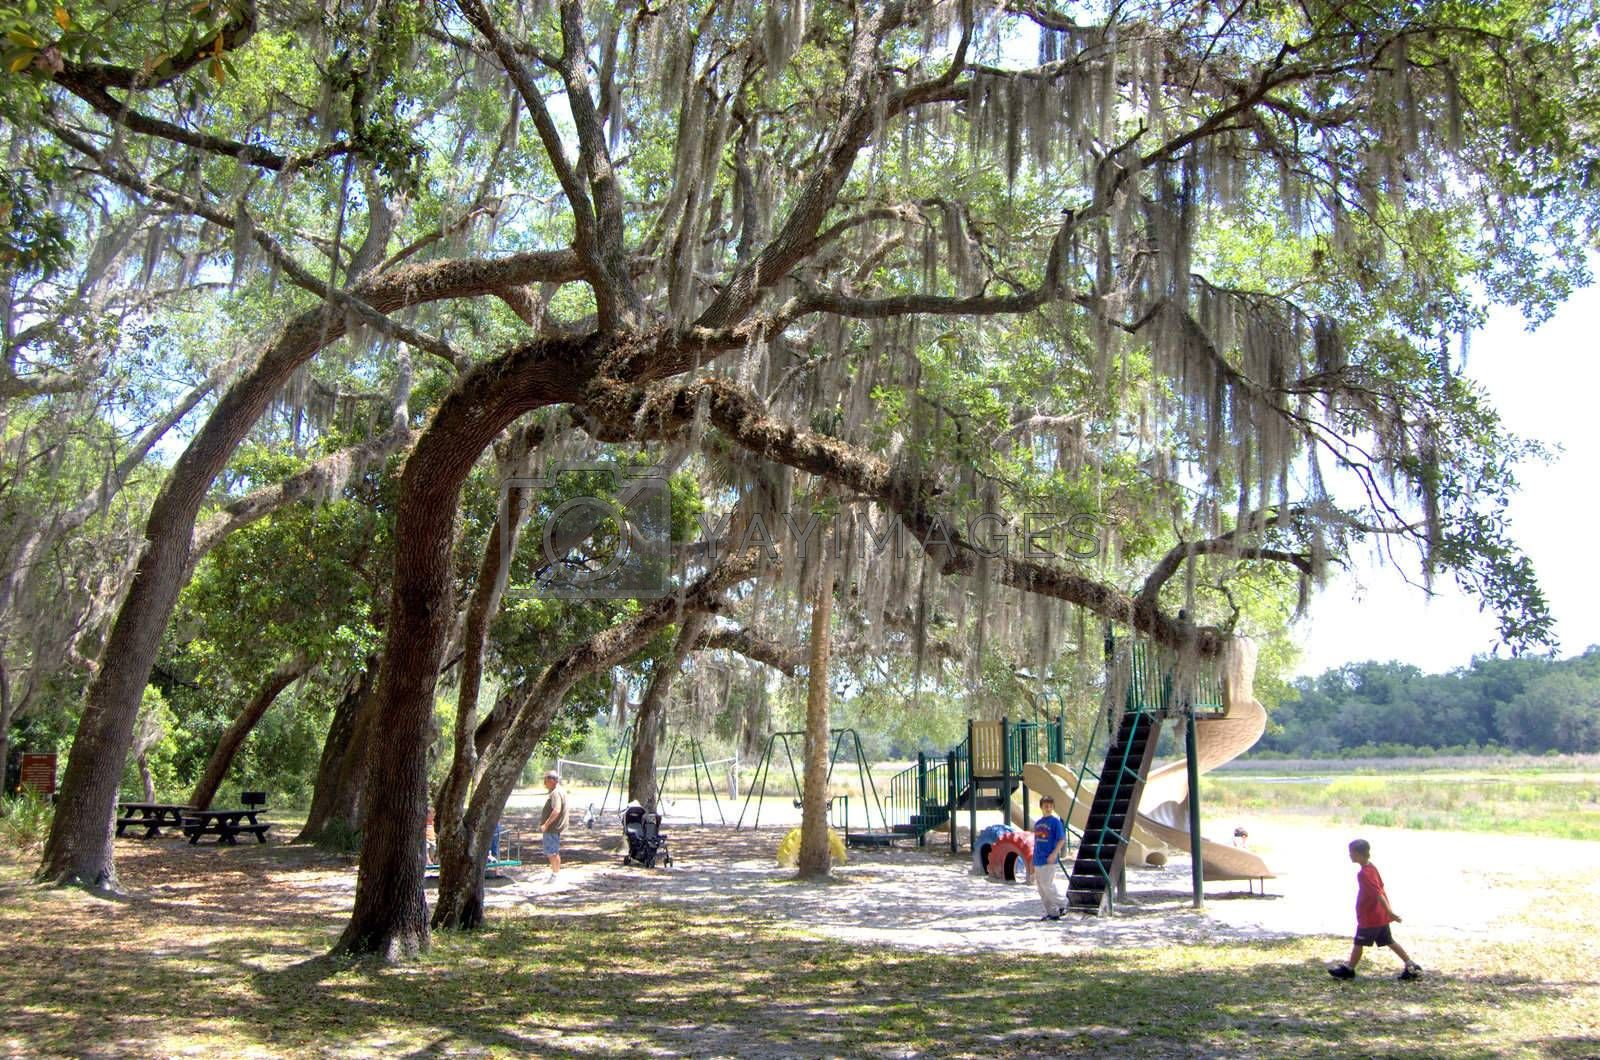 Spanish moss on trees at a kids playground